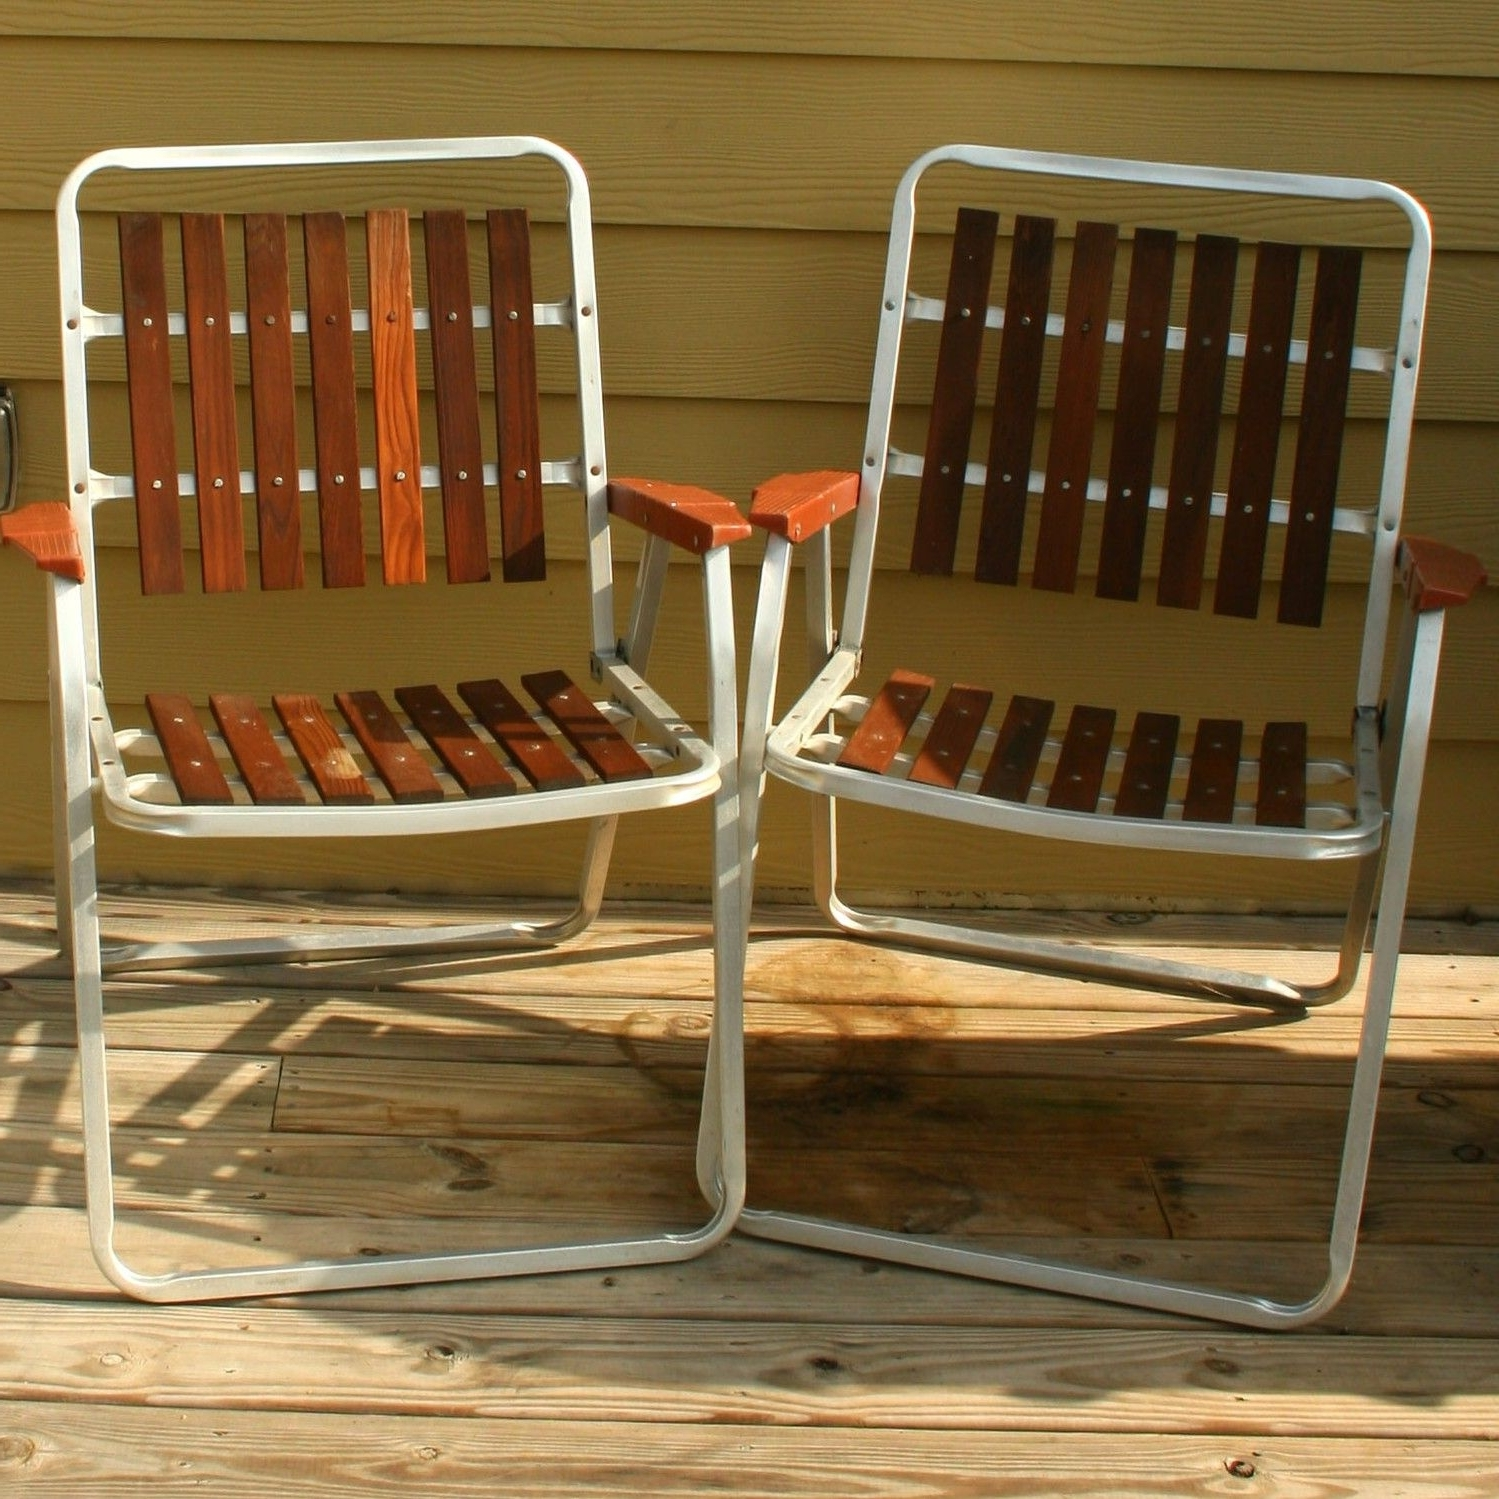 Retro Outdoor Rocking Chairs For Well Known Vintage Folding Lawn Chairs. Mid Century Modern (View 19 of 20)